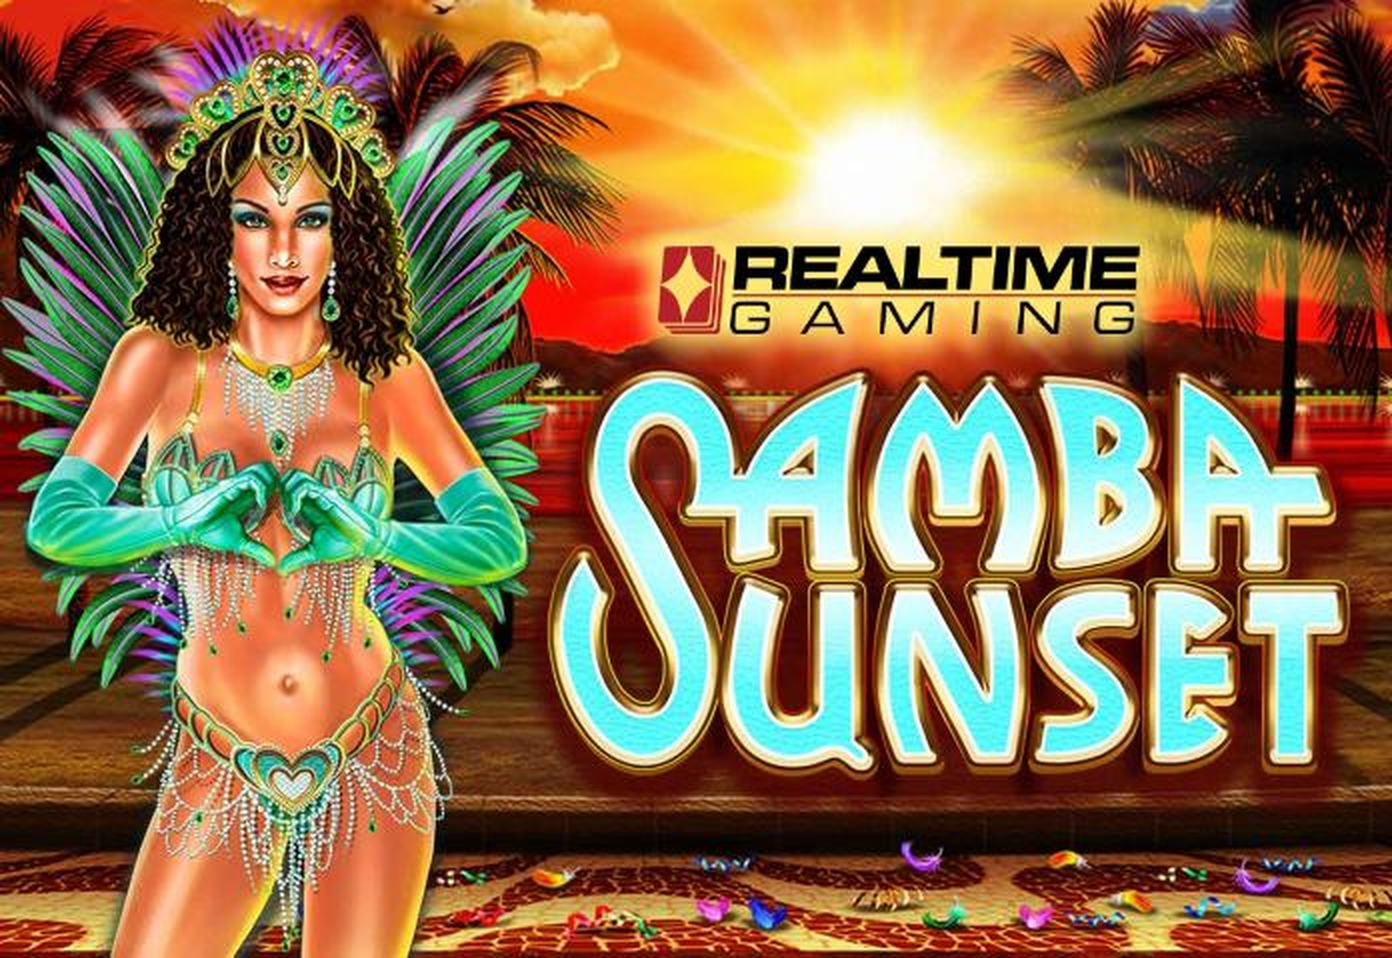 The Samba Sunset Online Slot Demo Game by Real Time Gaming